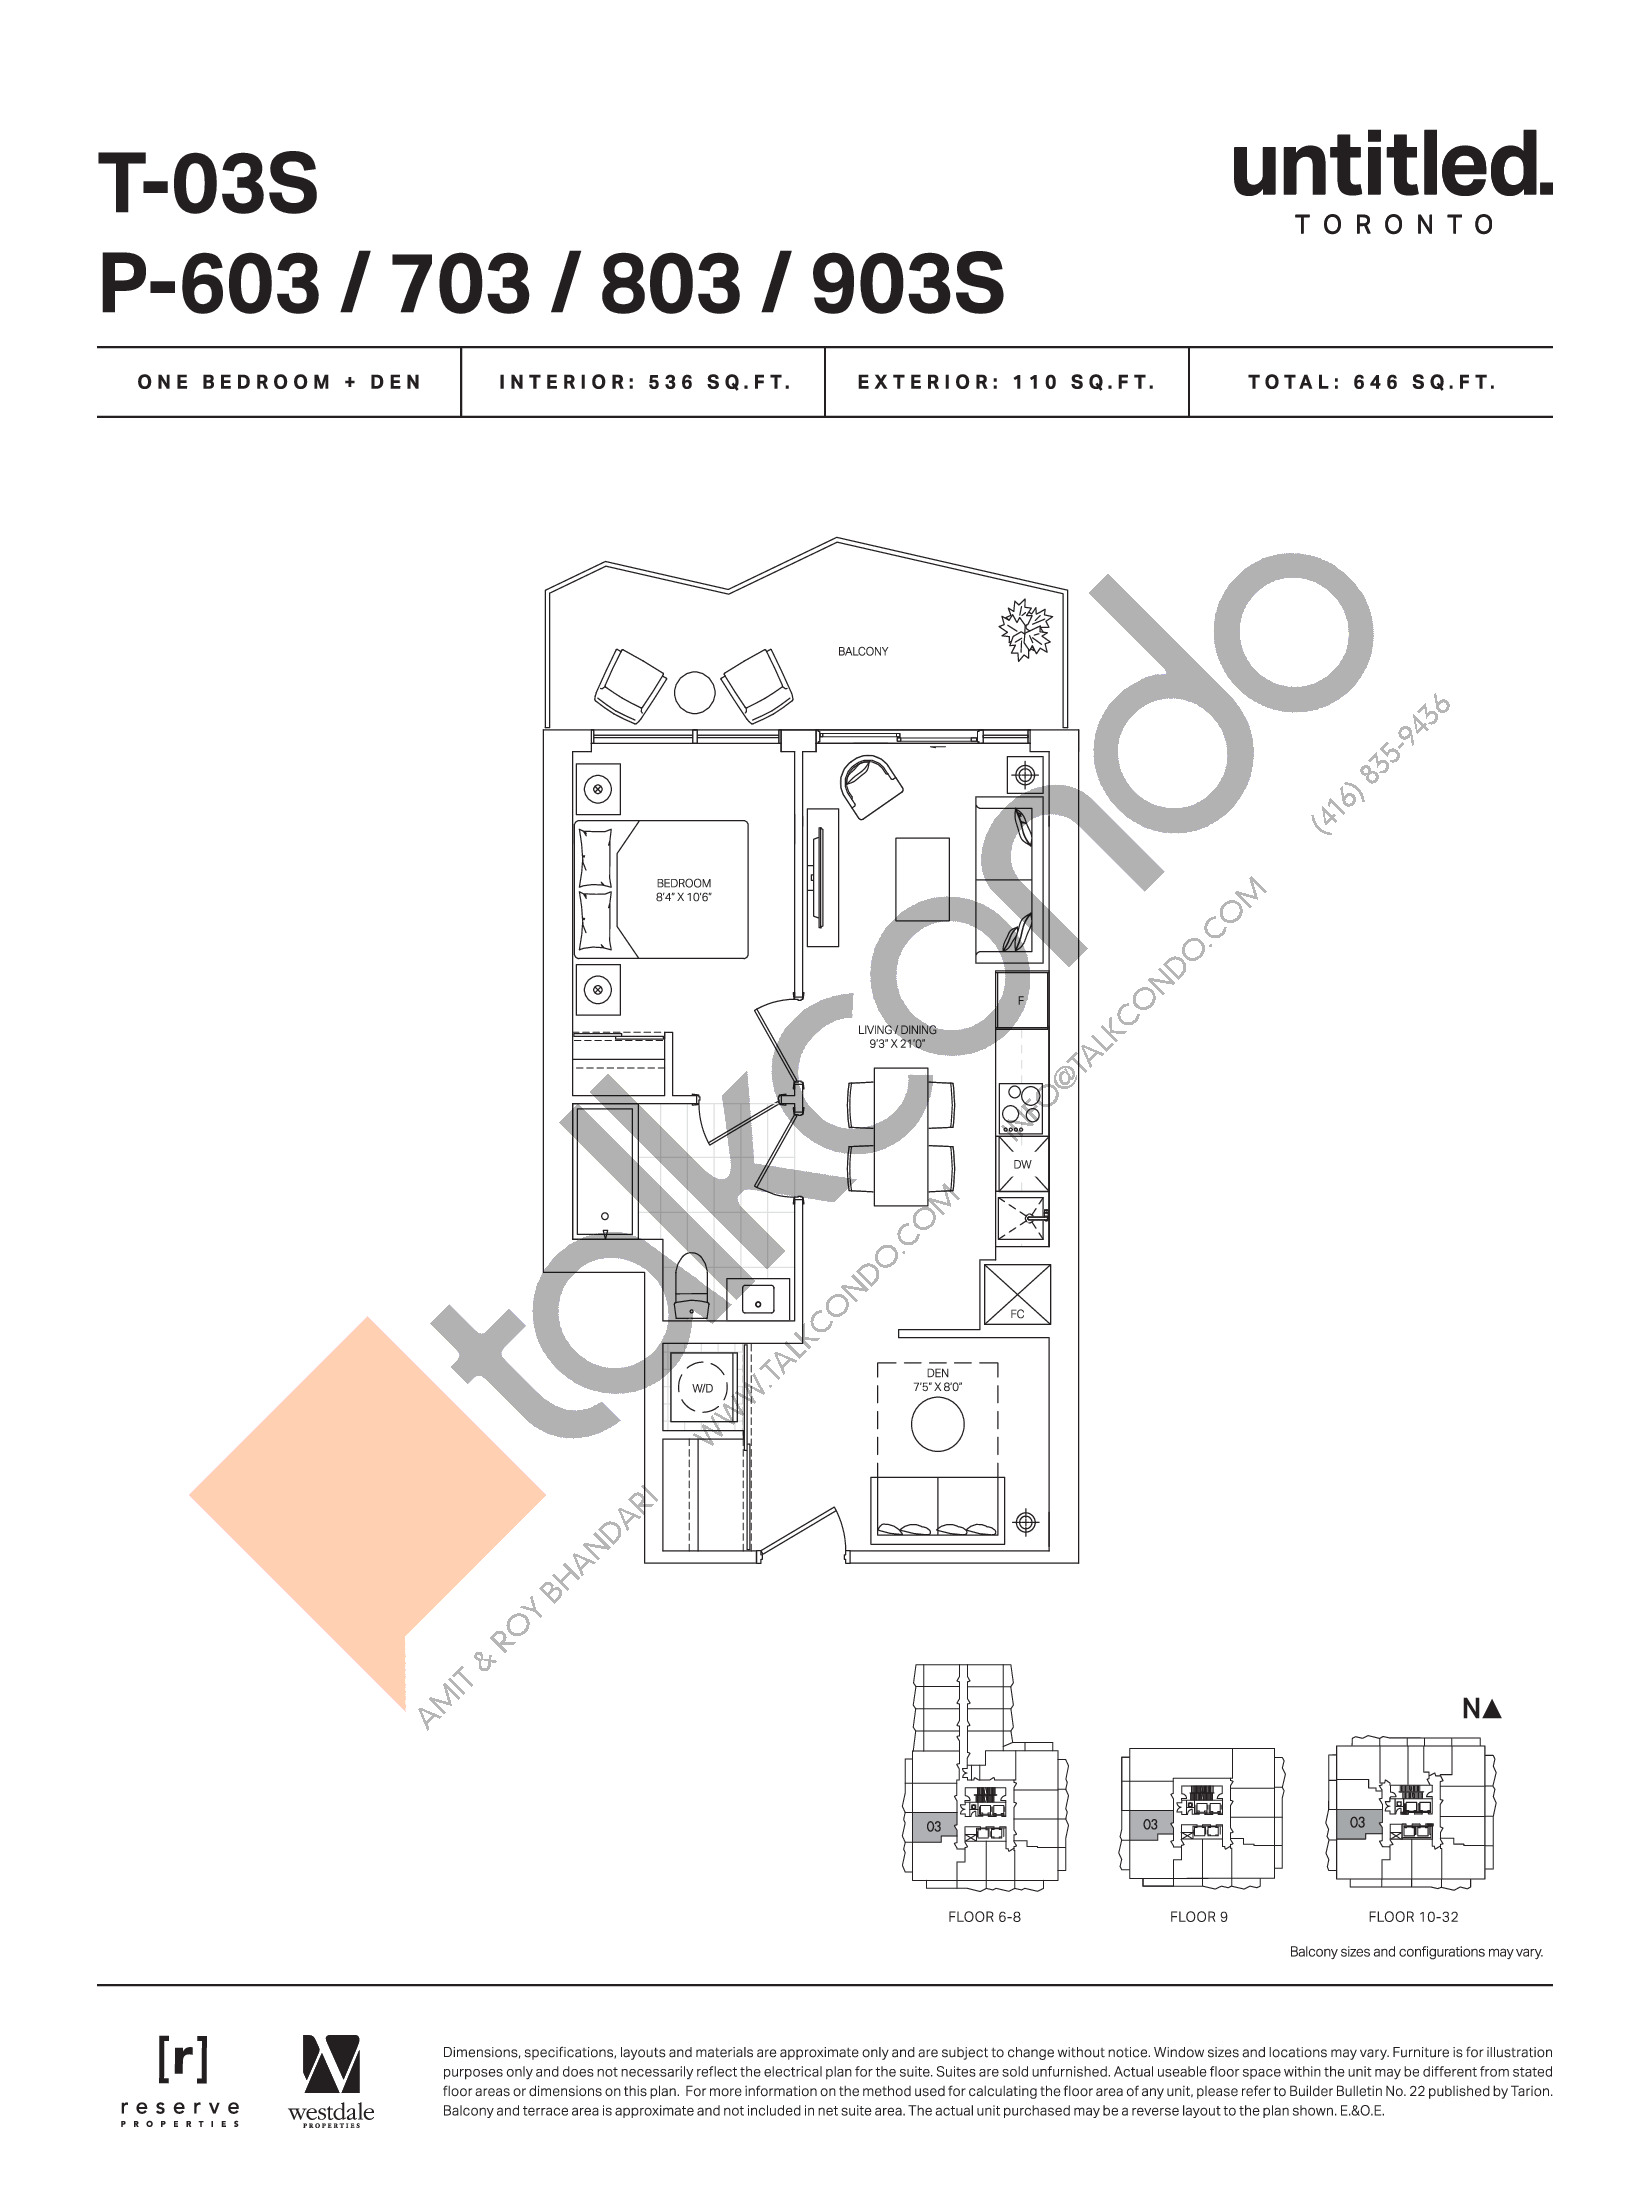 T-03S / P-603 / 703 / 803 / 903S Floor Plan at Untitled Toronto Condos - 536 sq.ft